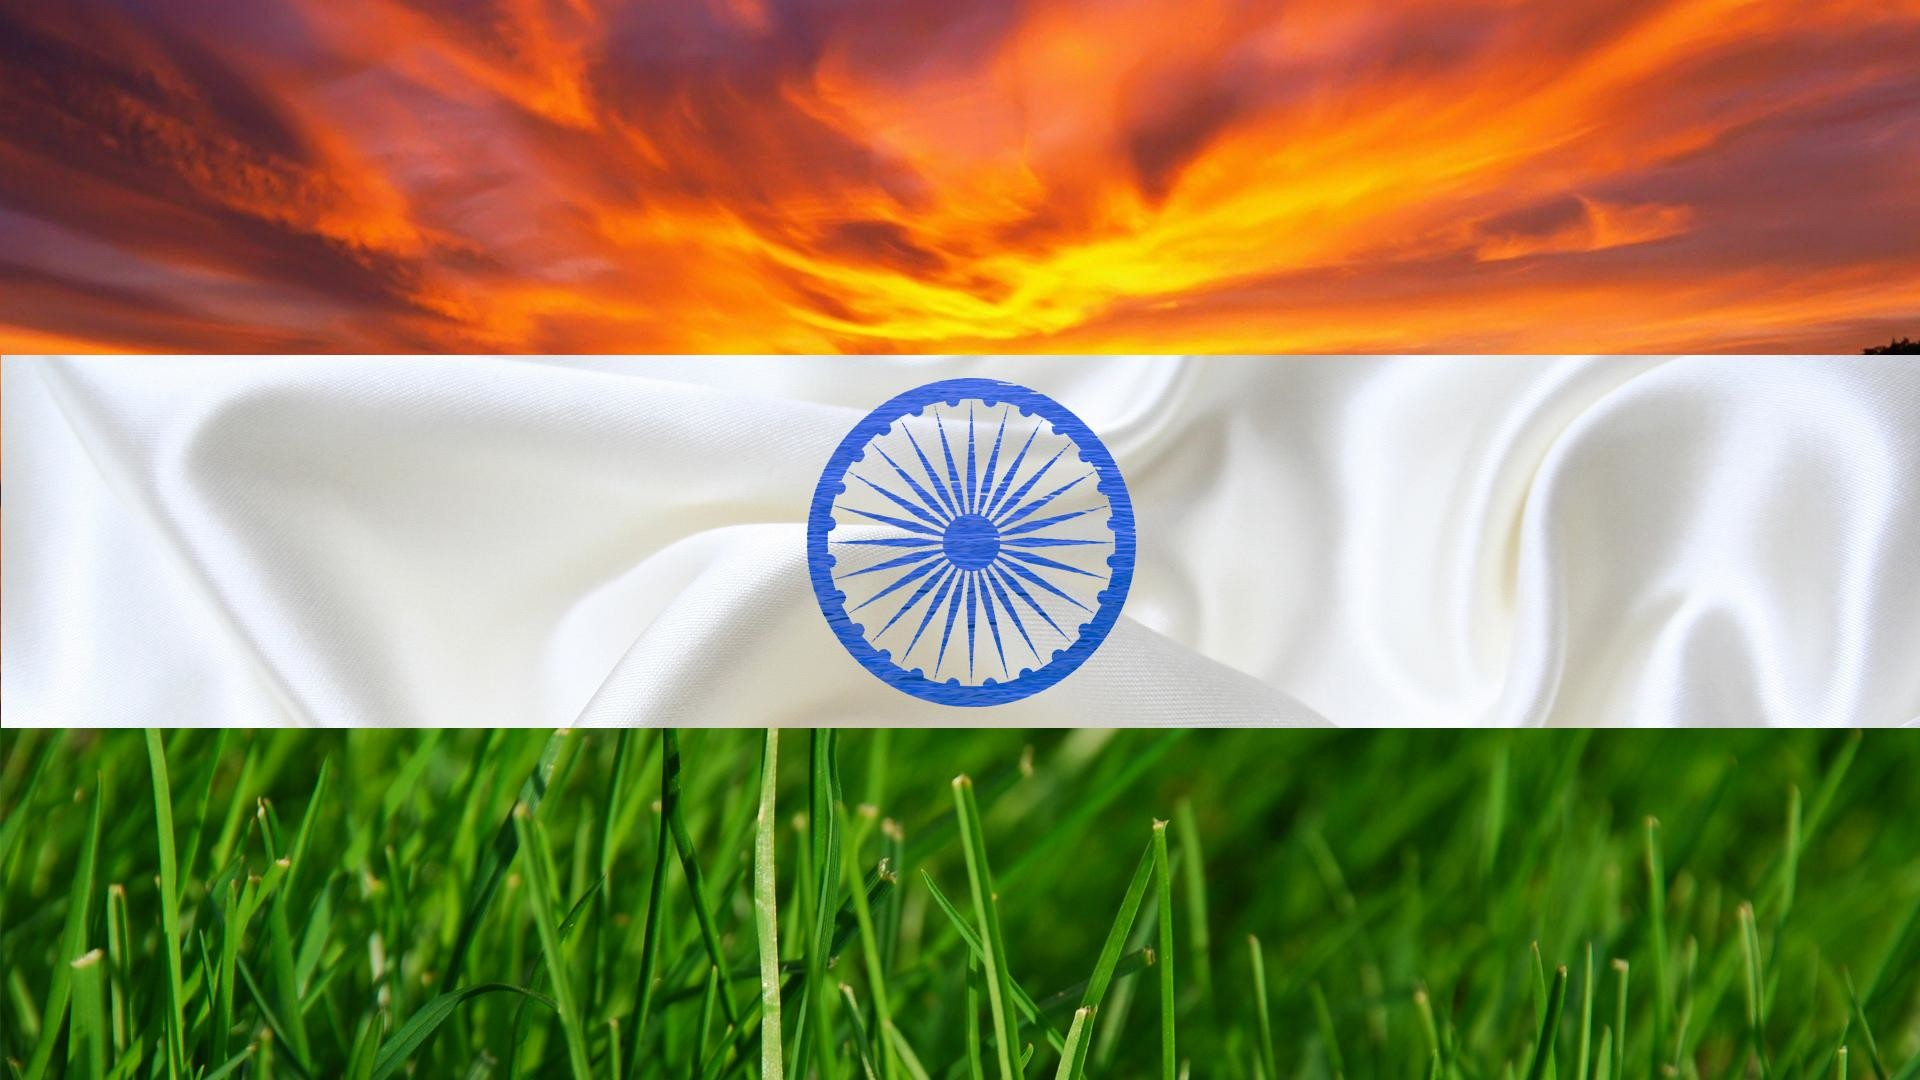 India Flag Hd 1920 X 1080: Indian Flag Wallpaper 2018 (78+ Images